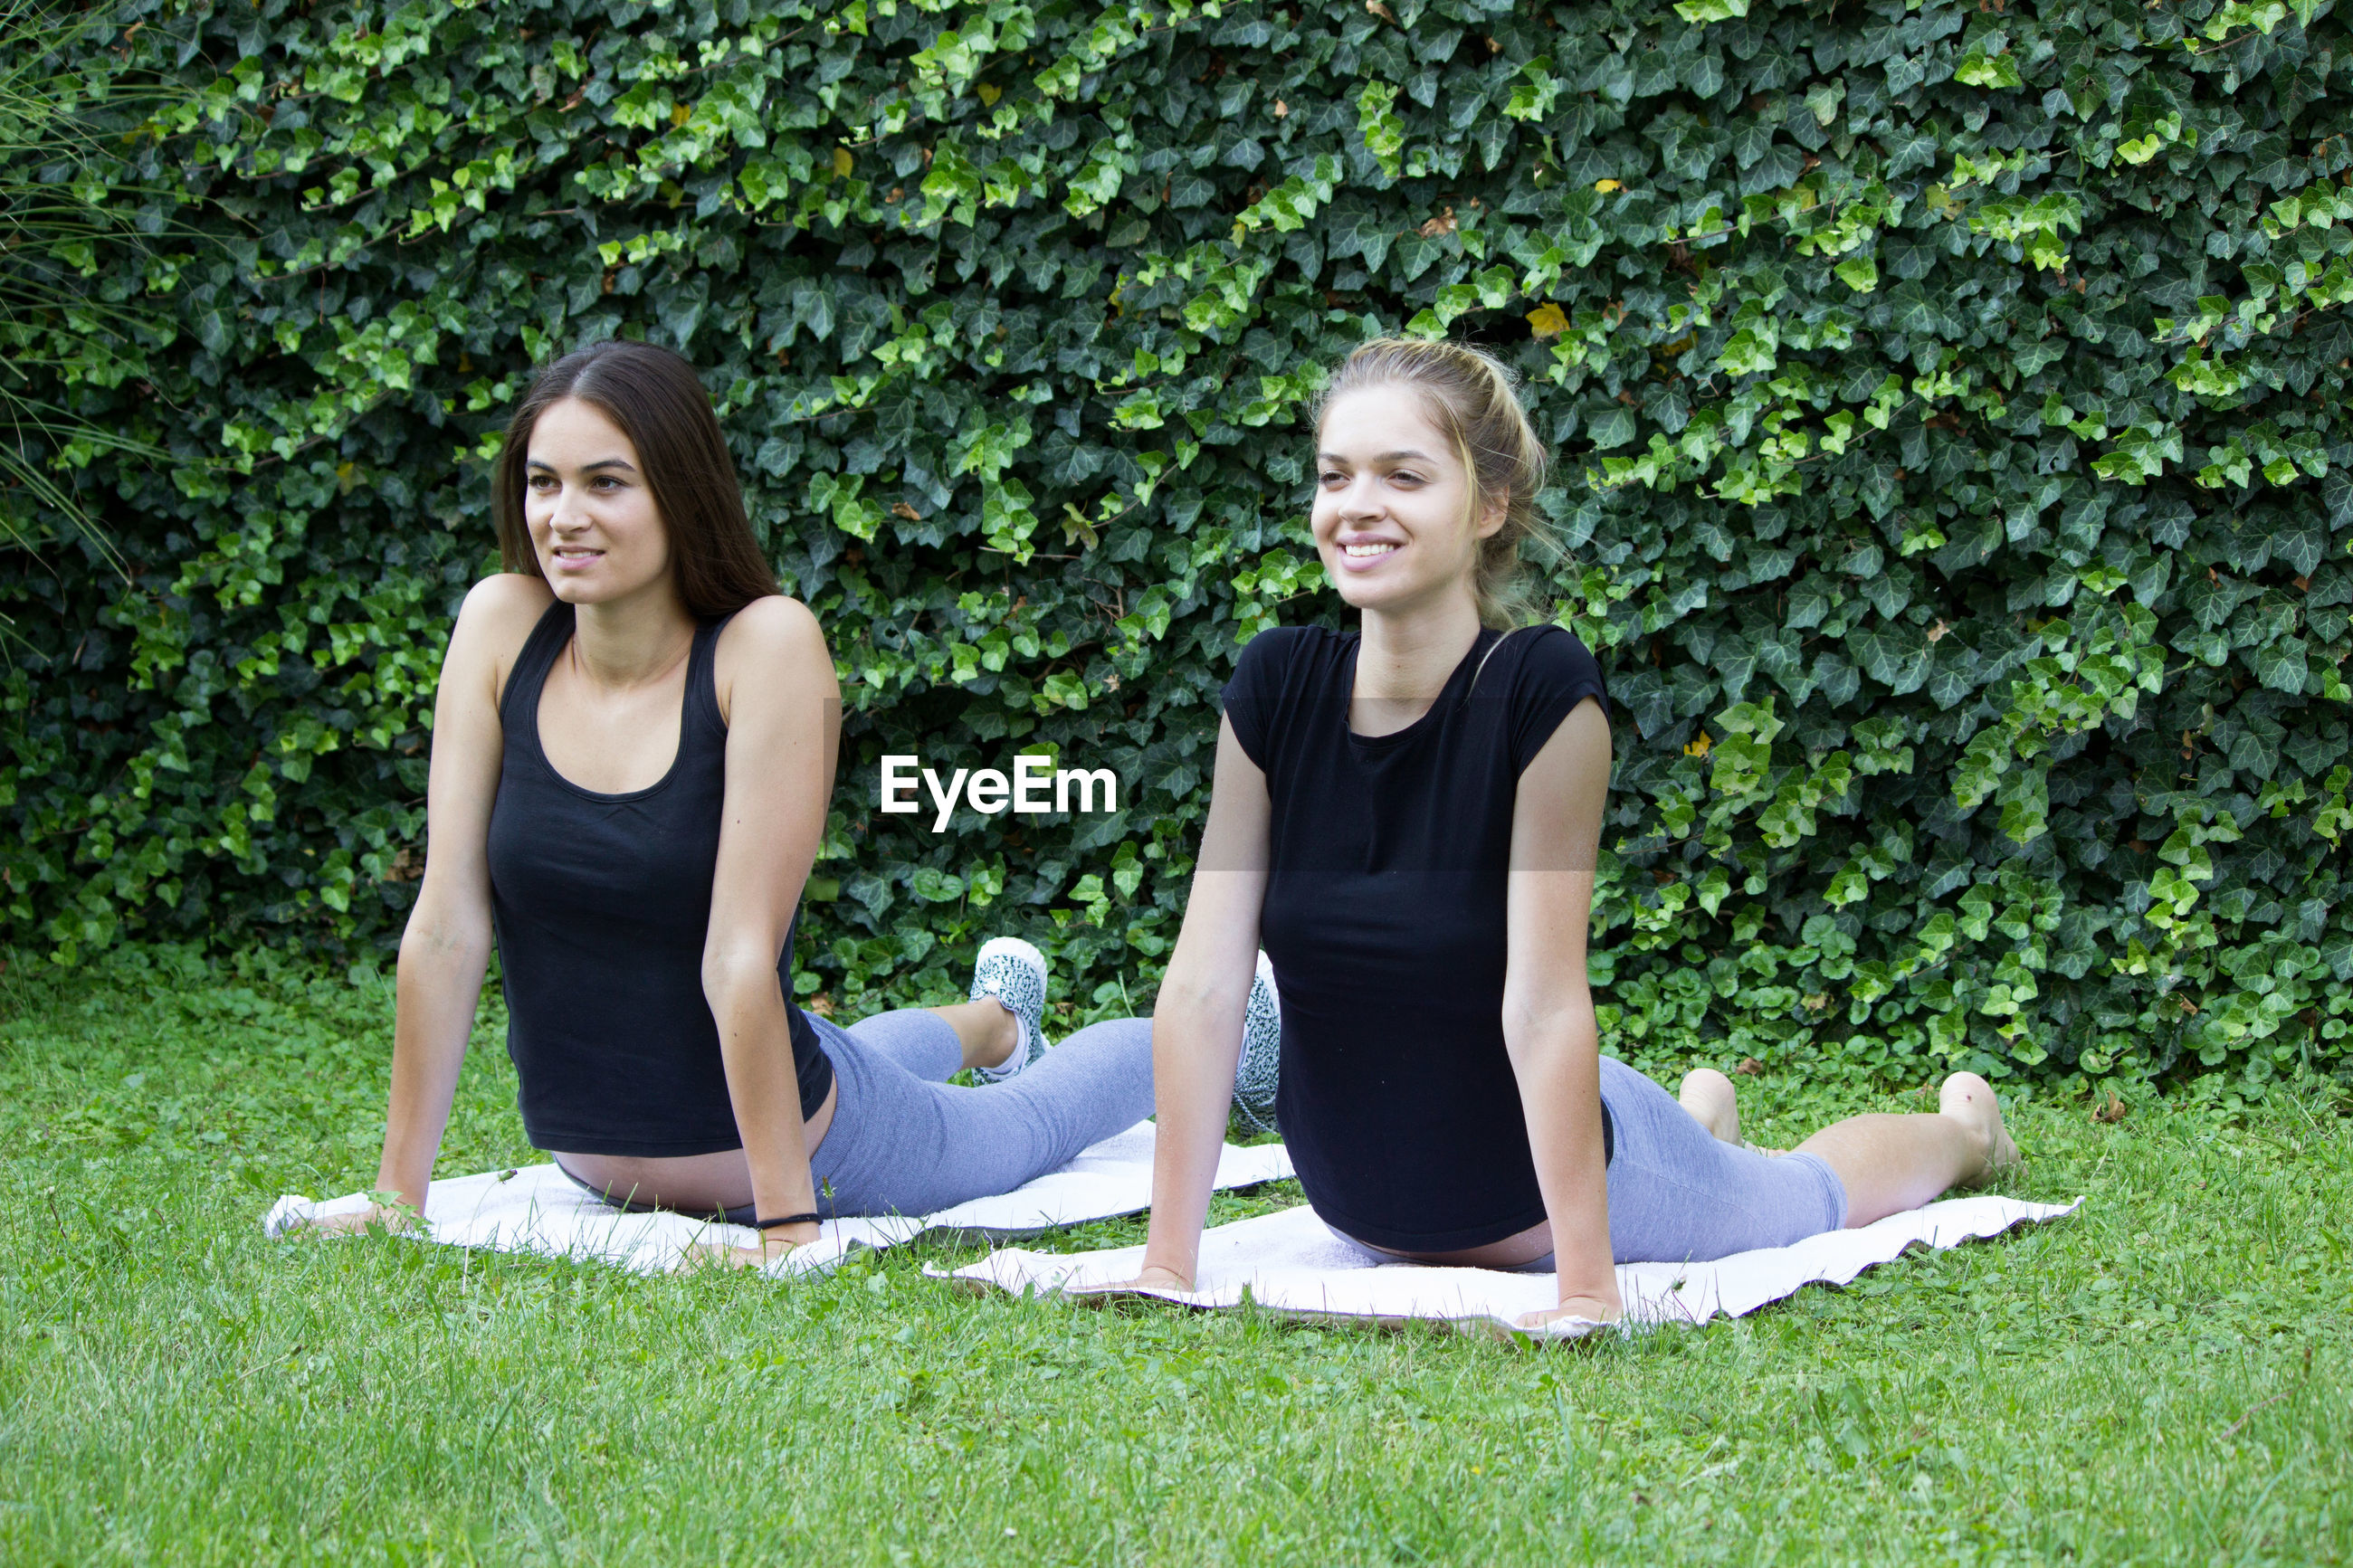 Smiling friends looking away while exercising against plants in park